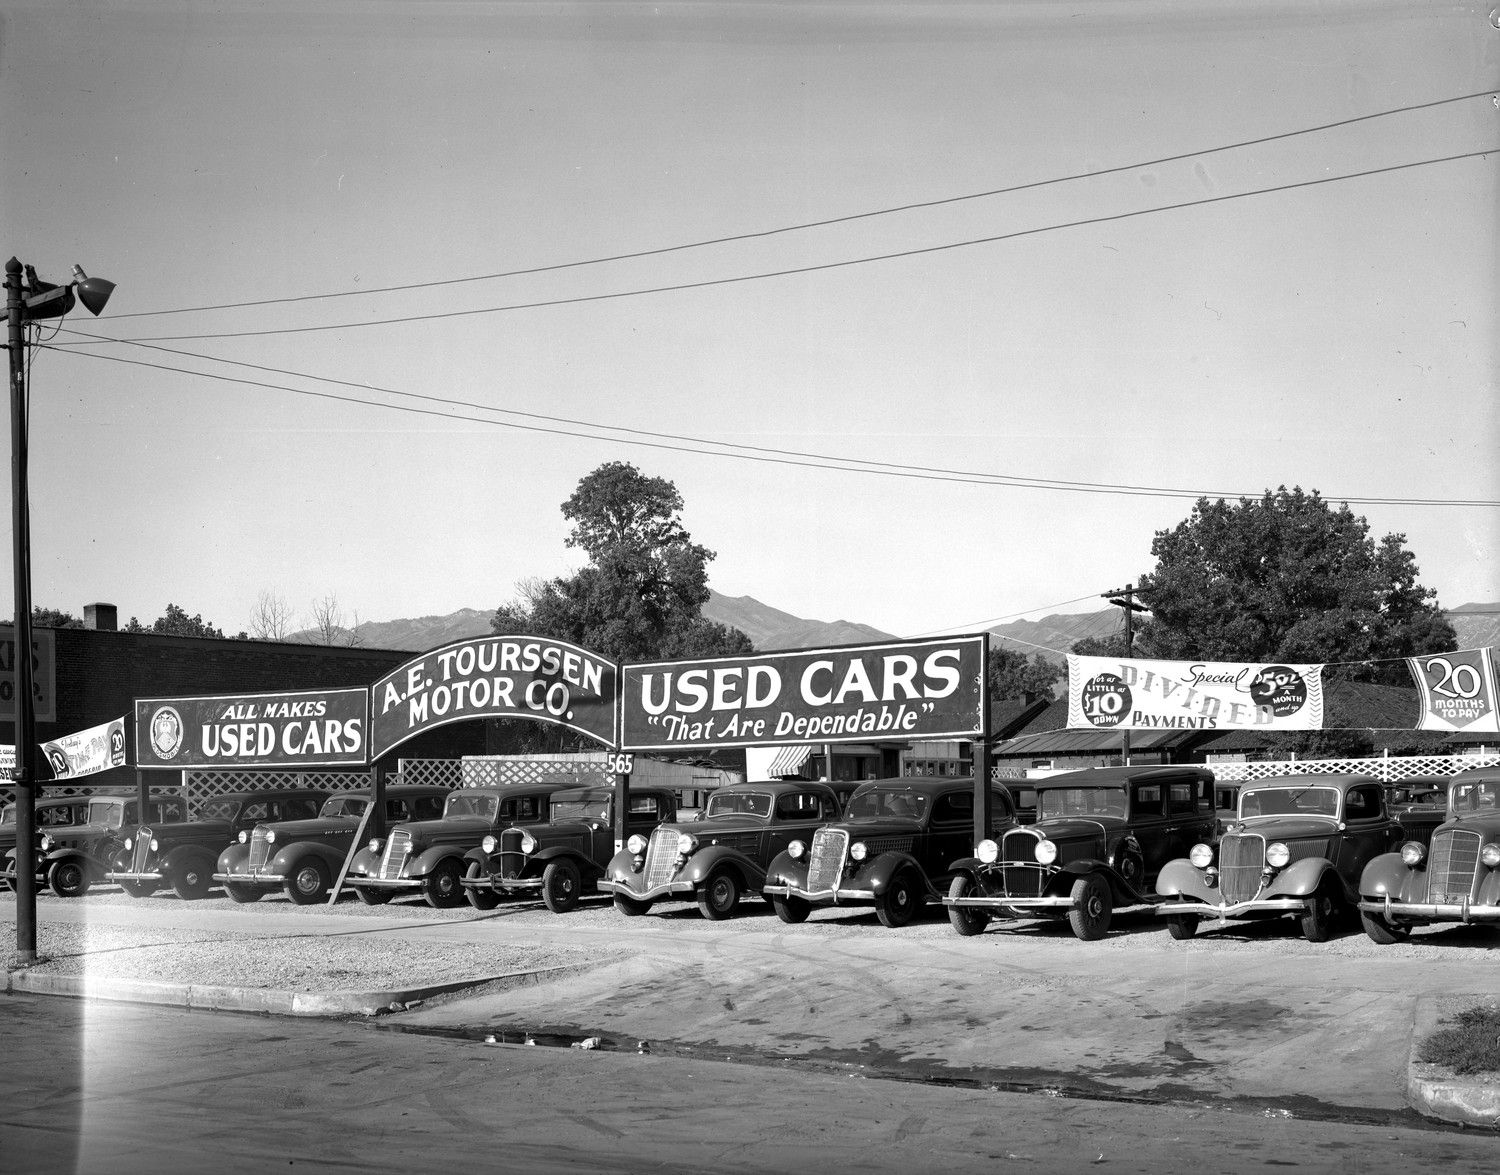 Lost Dealerships Project: A.E. Tourssen Used Cars | Cars, Vintage ...